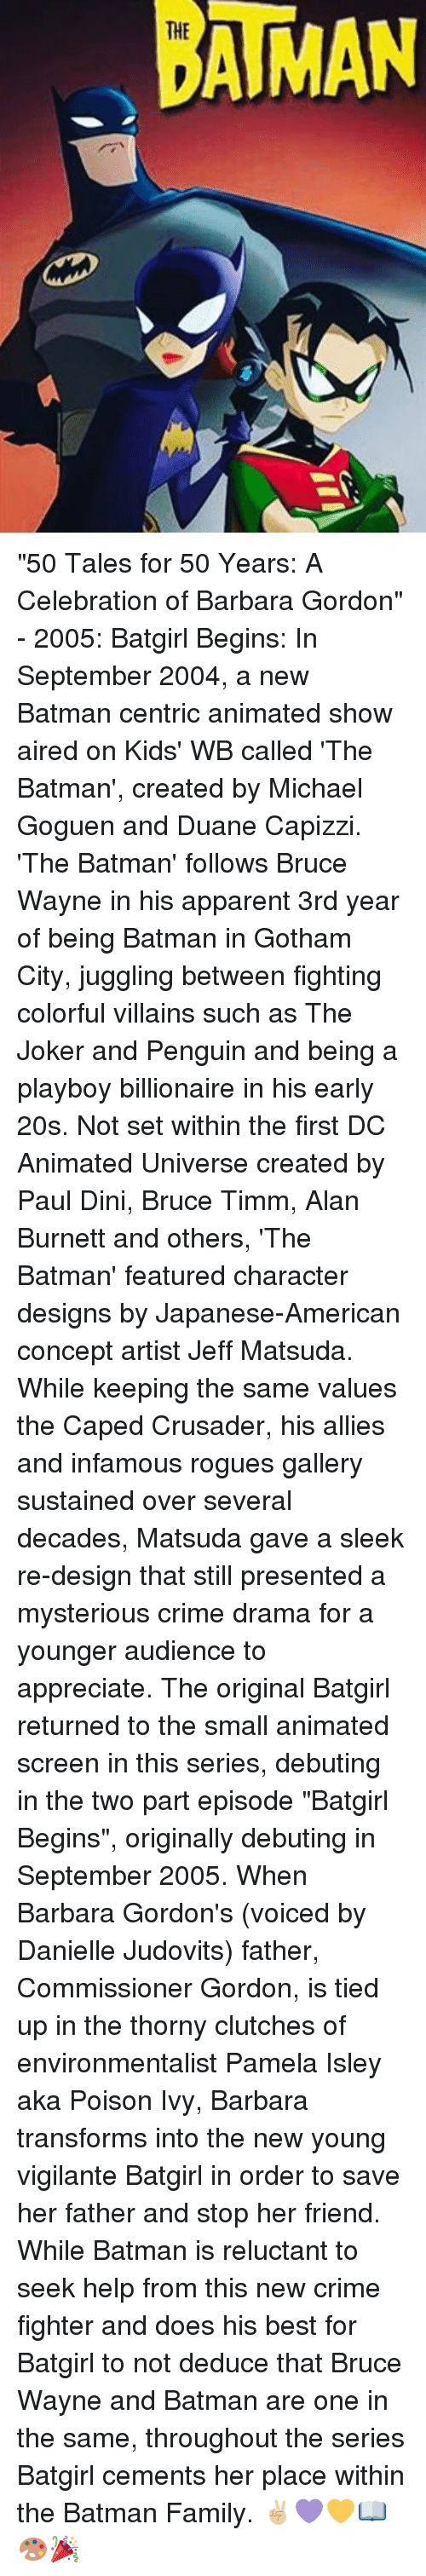 """crusades: AMAN """"50 Tales for 50 Years: A Celebration of Barbara Gordon"""" - 2005: Batgirl Begins: In September 2004, a new Batman centric animated show aired on Kids' WB called 'The Batman', created by Michael Goguen and Duane Capizzi. 'The Batman' follows Bruce Wayne in his apparent 3rd year of being Batman in Gotham City, juggling between fighting colorful villains such as The Joker and Penguin and being a playboy billionaire in his early 20s. Not set within the first DC Animated Universe created by Paul Dini, Bruce Timm, Alan Burnett and others, 'The Batman' featured character designs by Japanese-American concept artist Jeff Matsuda. While keeping the same values the Caped Crusader, his allies and infamous rogues gallery sustained over several decades, Matsuda gave a sleek re-design that still presented a mysterious crime drama for a younger audience to appreciate. The original Batgirl returned to the small animated screen in this series, debuting in the two part episode """"Batgirl Begins"""", originally debuting in September 2005. When Barbara Gordon's (voiced by Danielle Judovits) father, Commissioner Gordon, is tied up in the thorny clutches of environmentalist Pamela Isley aka Poison Ivy, Barbara transforms into the new young vigilante Batgirl in order to save her father and stop her friend. While Batman is reluctant to seek help from this new crime fighter and does his best for Batgirl to not deduce that Bruce Wayne and Batman are one in the same, throughout the series Batgirl cements her place within the Batman Family. ✌🏼💜💛📖🎨🎉"""